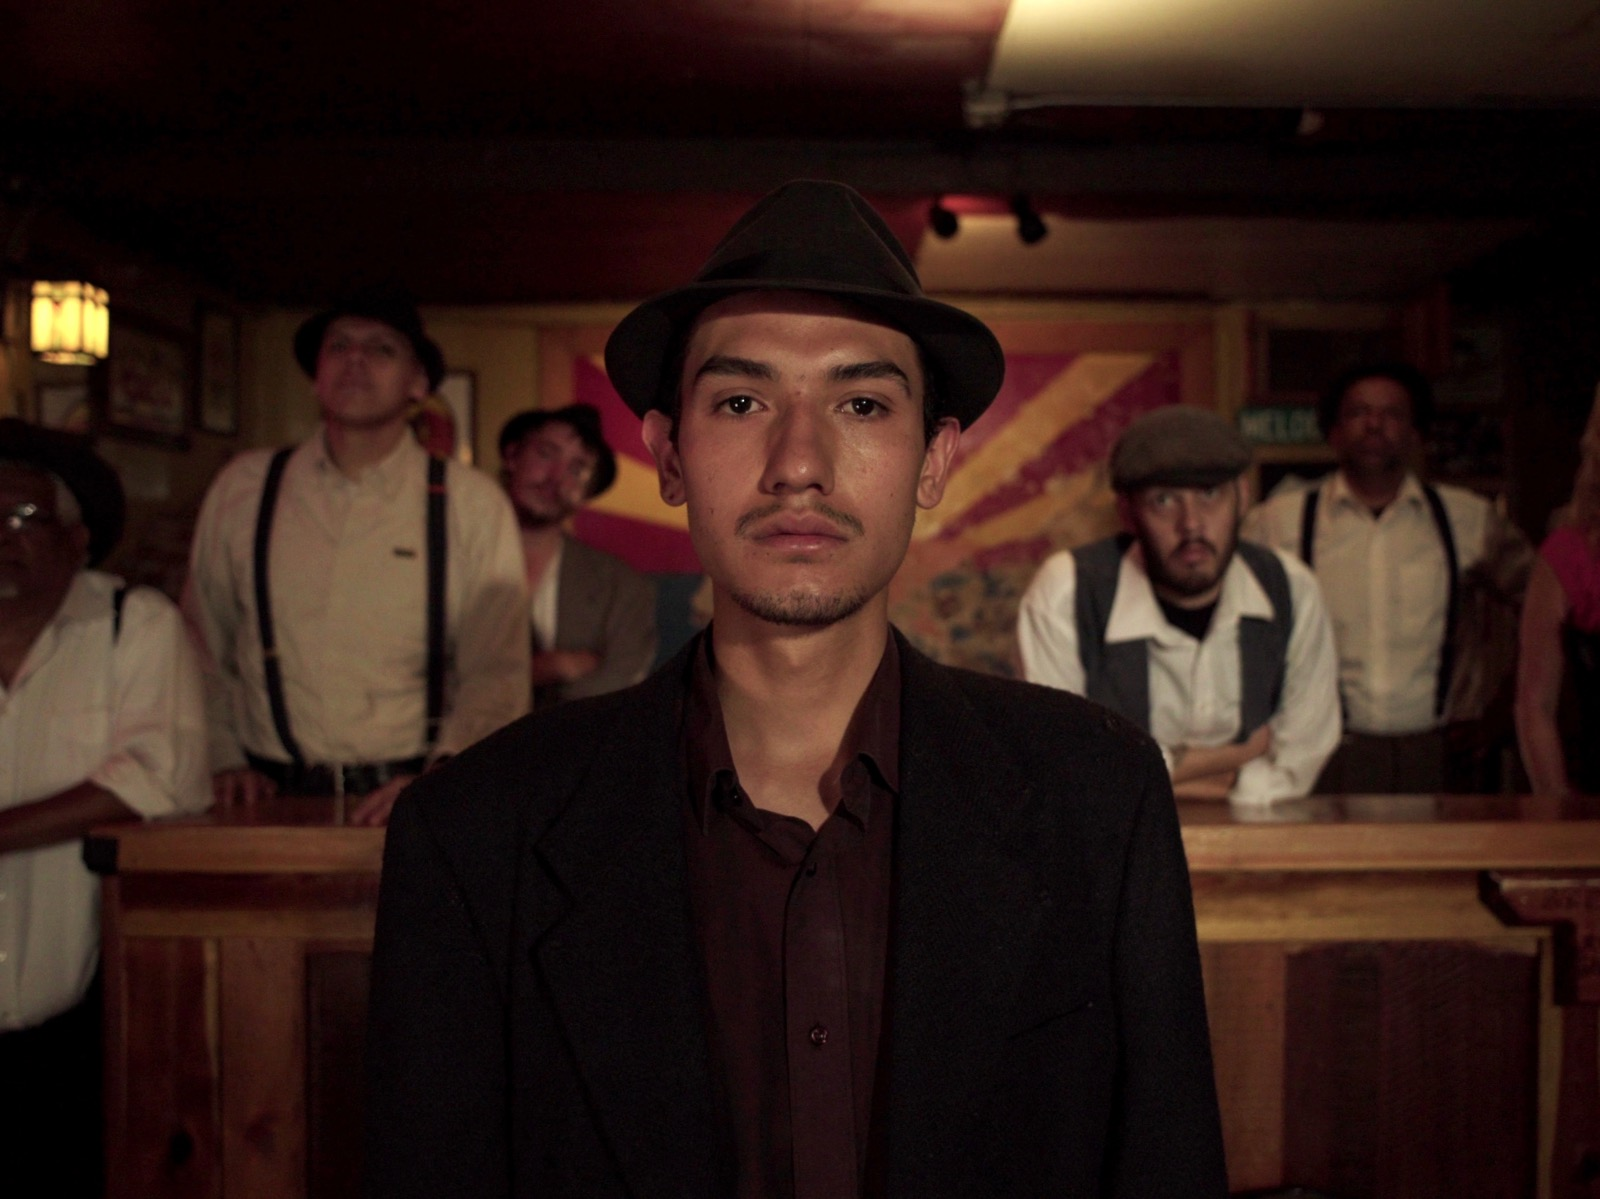 A 'shameful moment': Film depicts violent deportation a century ago